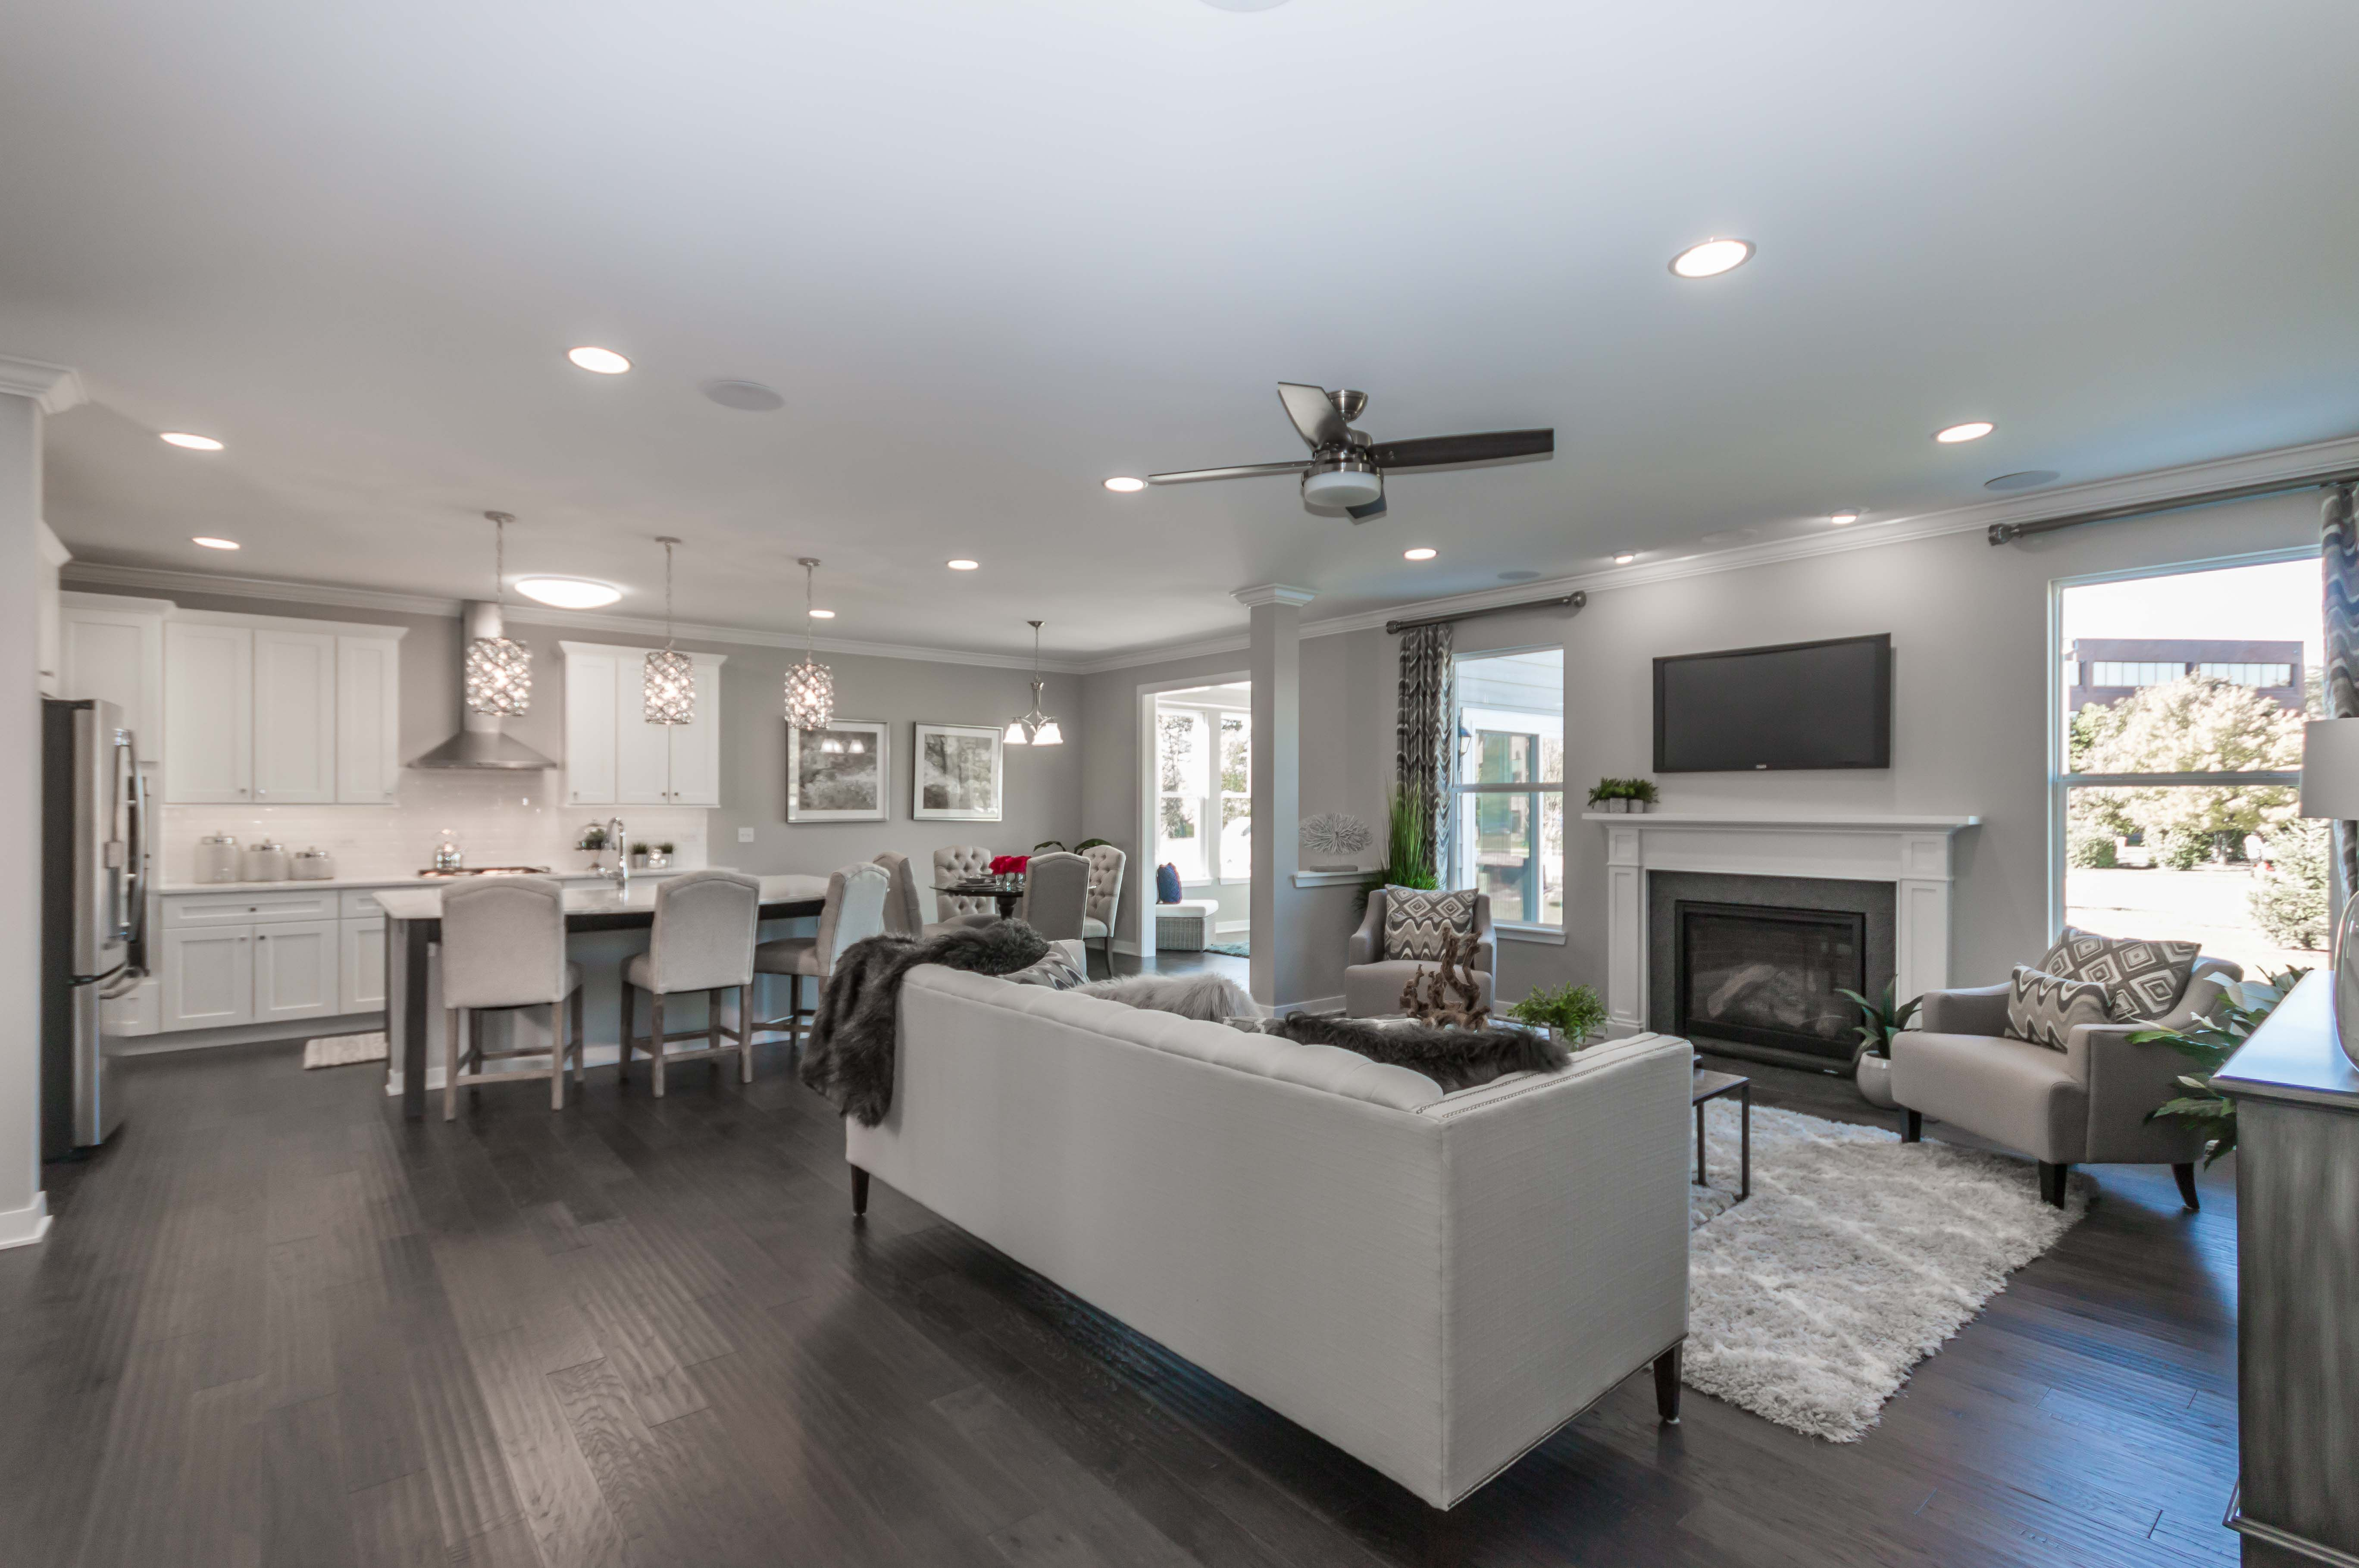 Open Plan Concept See Home Tour Corner Fireplace Living Room Model Homes New Homes